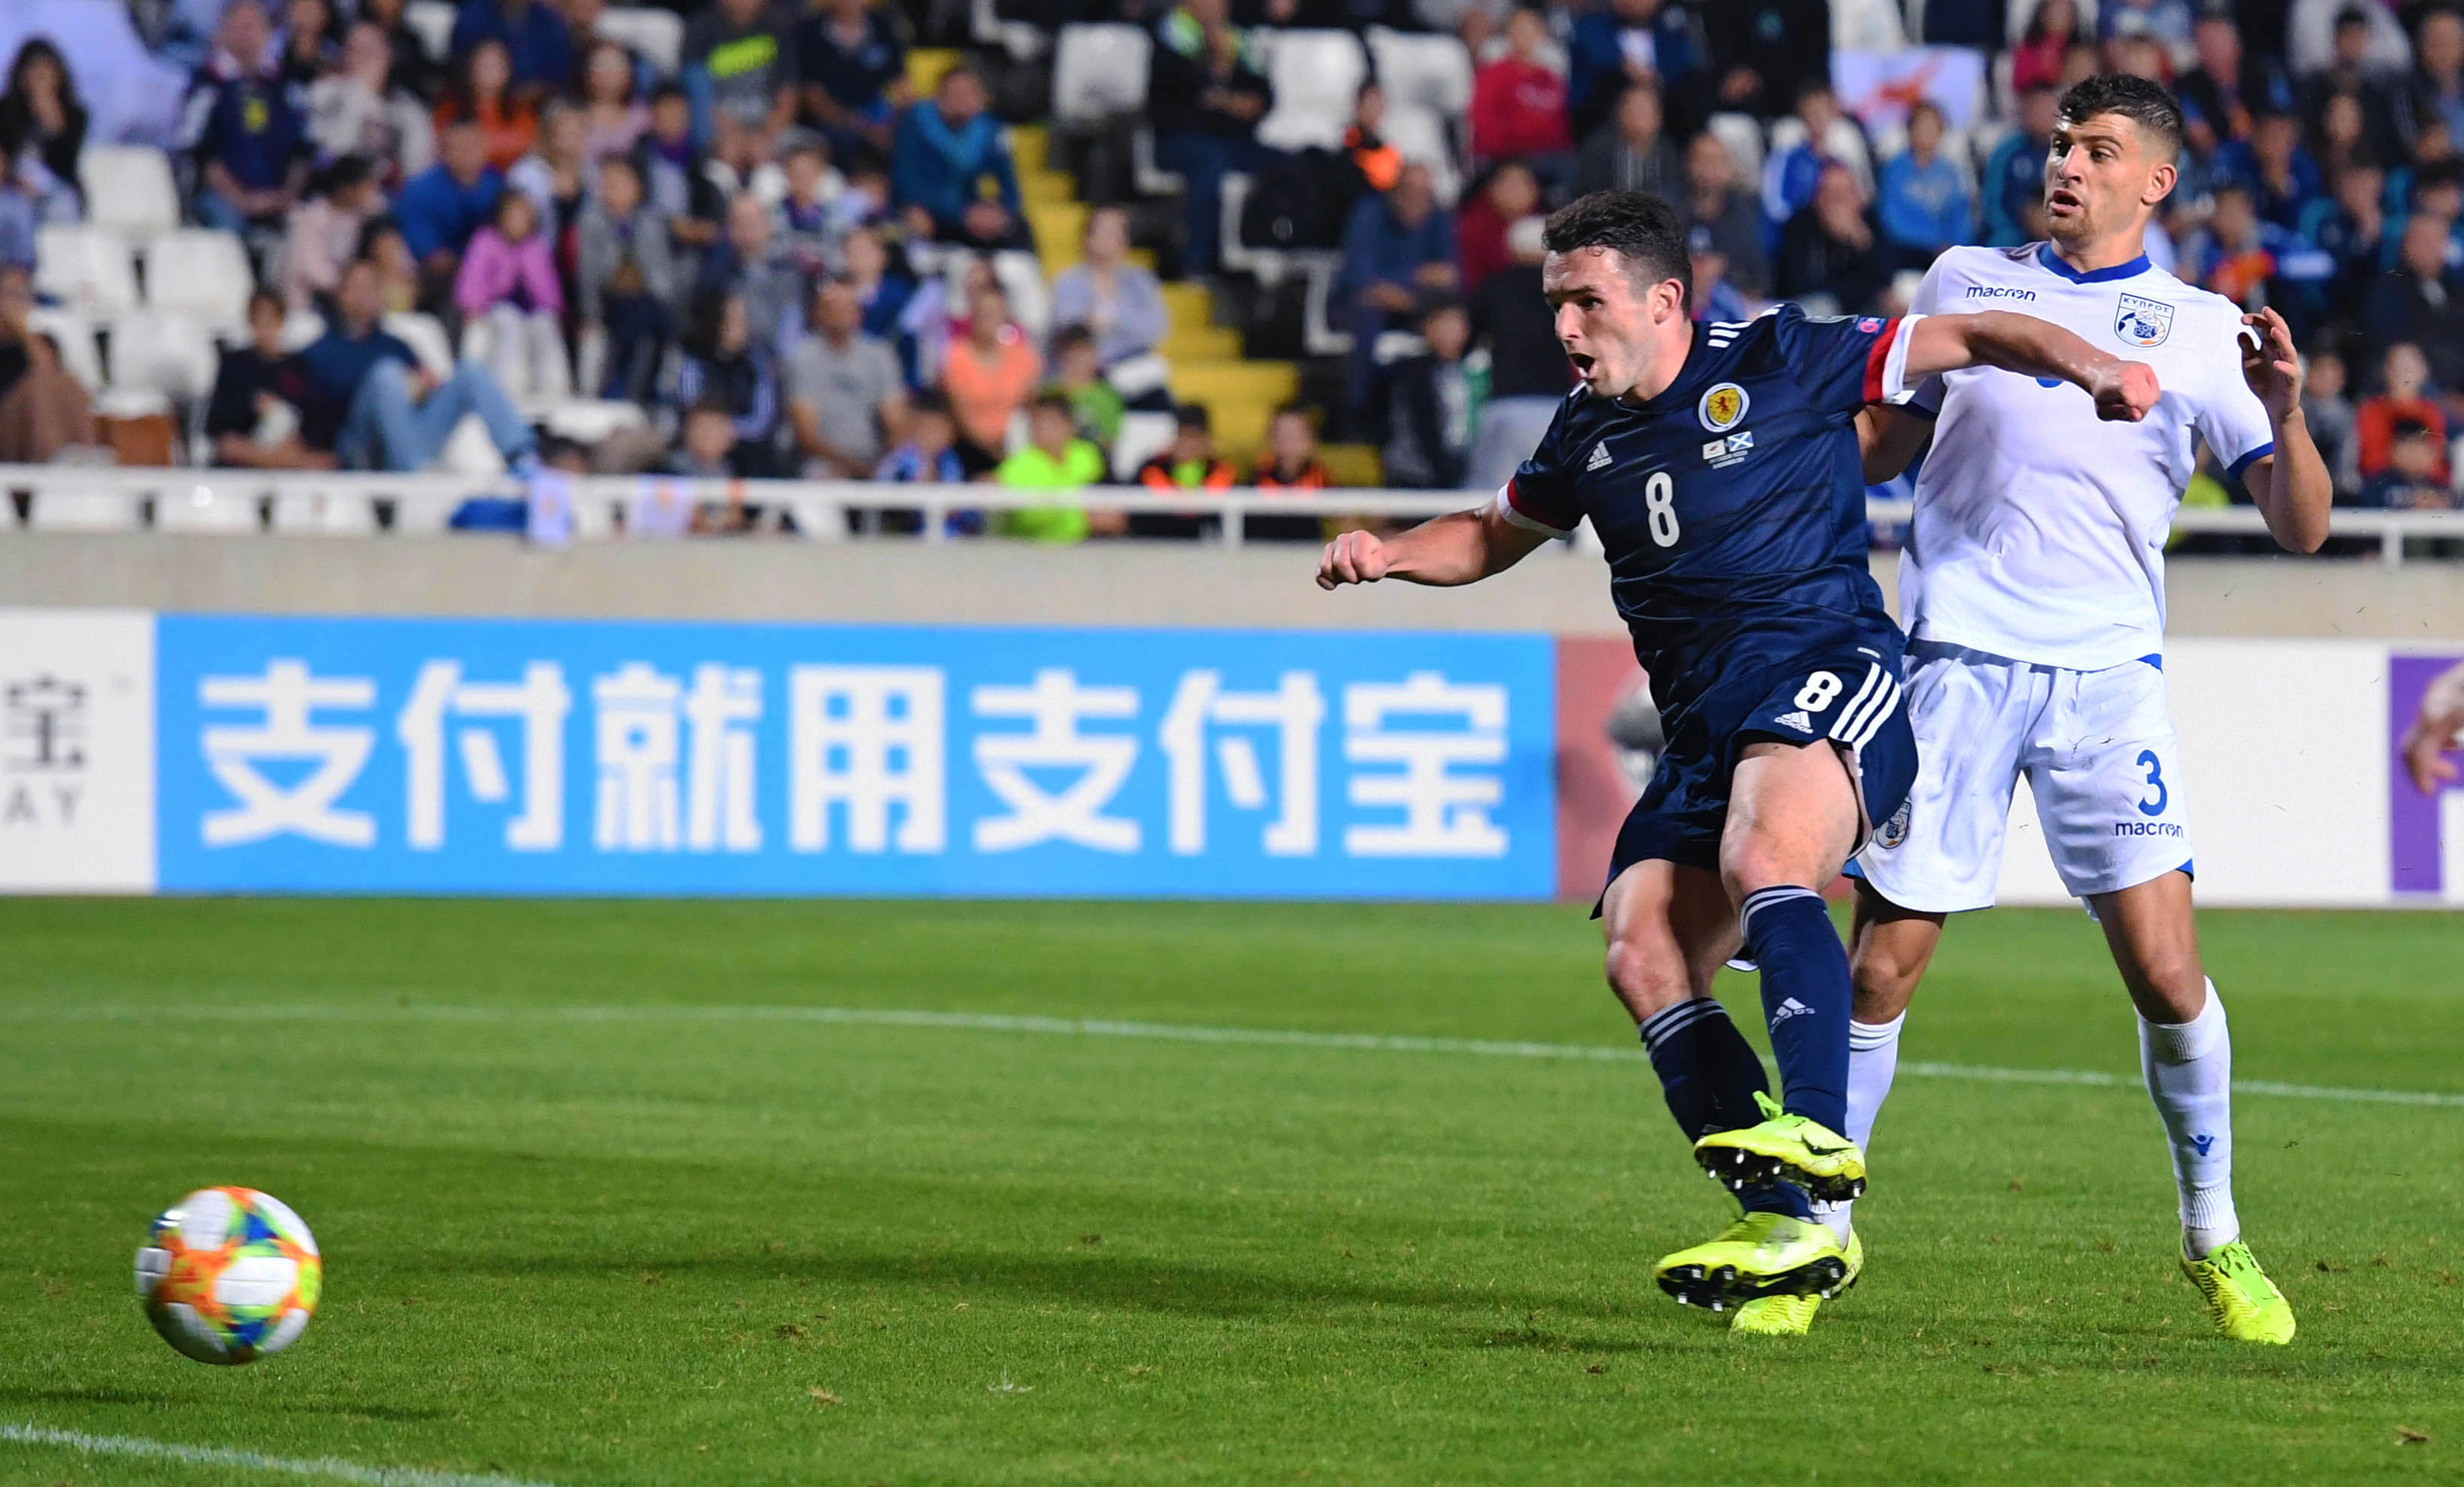 John McGinn strikes to make it 2-1 to Scotland during the UEFA European qualifier between Cyprus and Scotland, at the GSP Stadium, on November 16, 2019, in Nicosia, Cyprus.